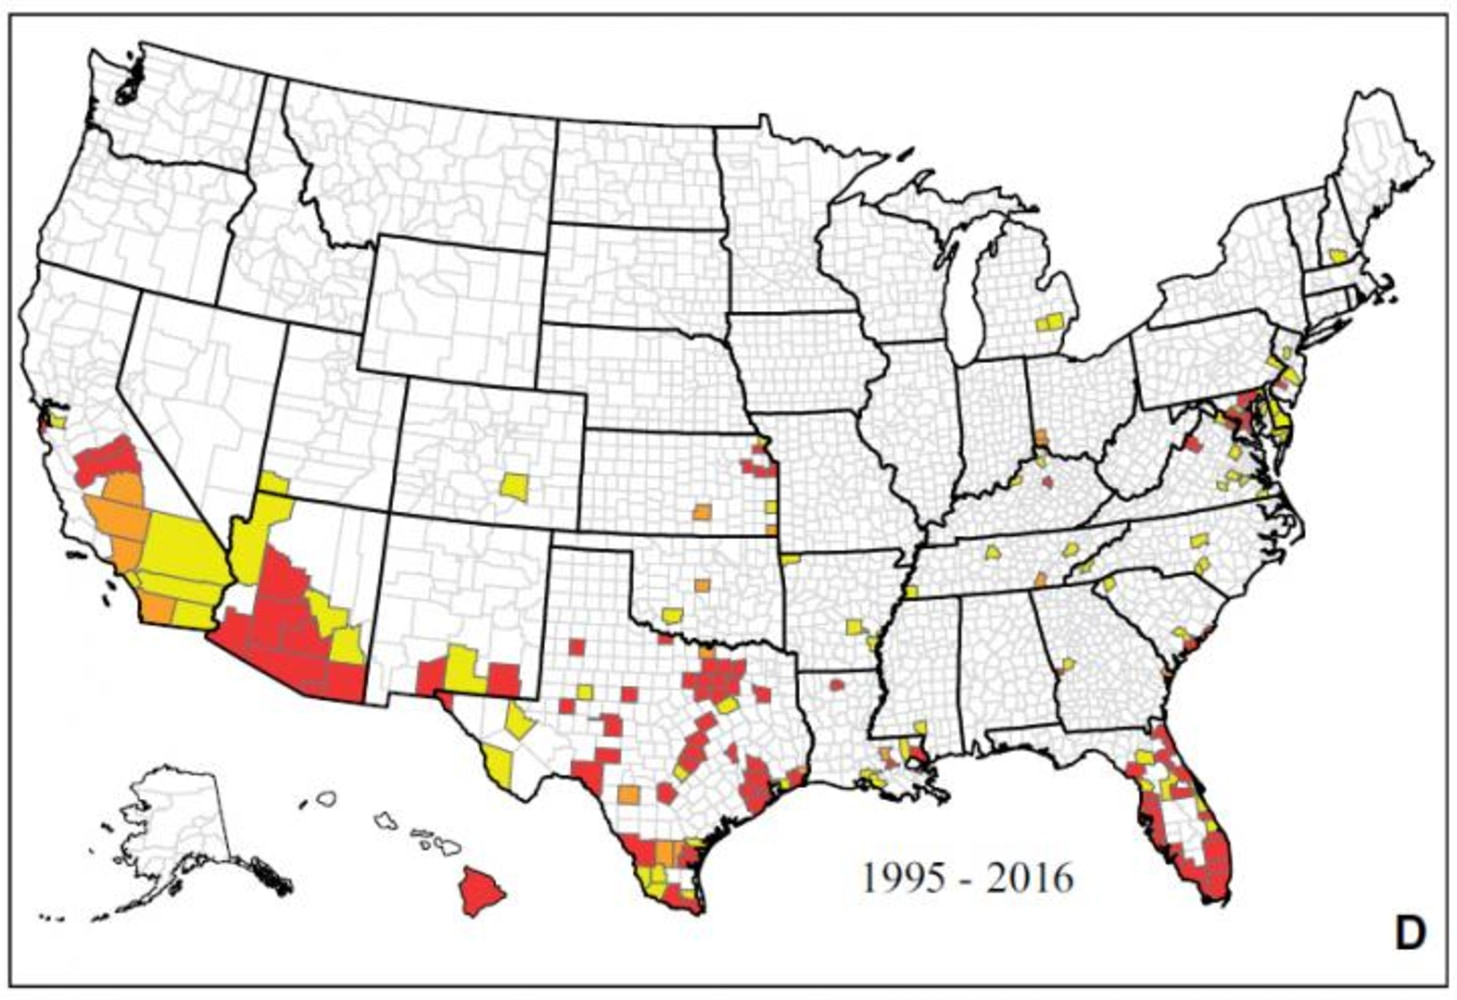 Map Showing The Reported Occurrence Of Ae Aegypti By County Between 1 January 1995 And March 2016 In The United States Counties Shown In Yellow Had Ae